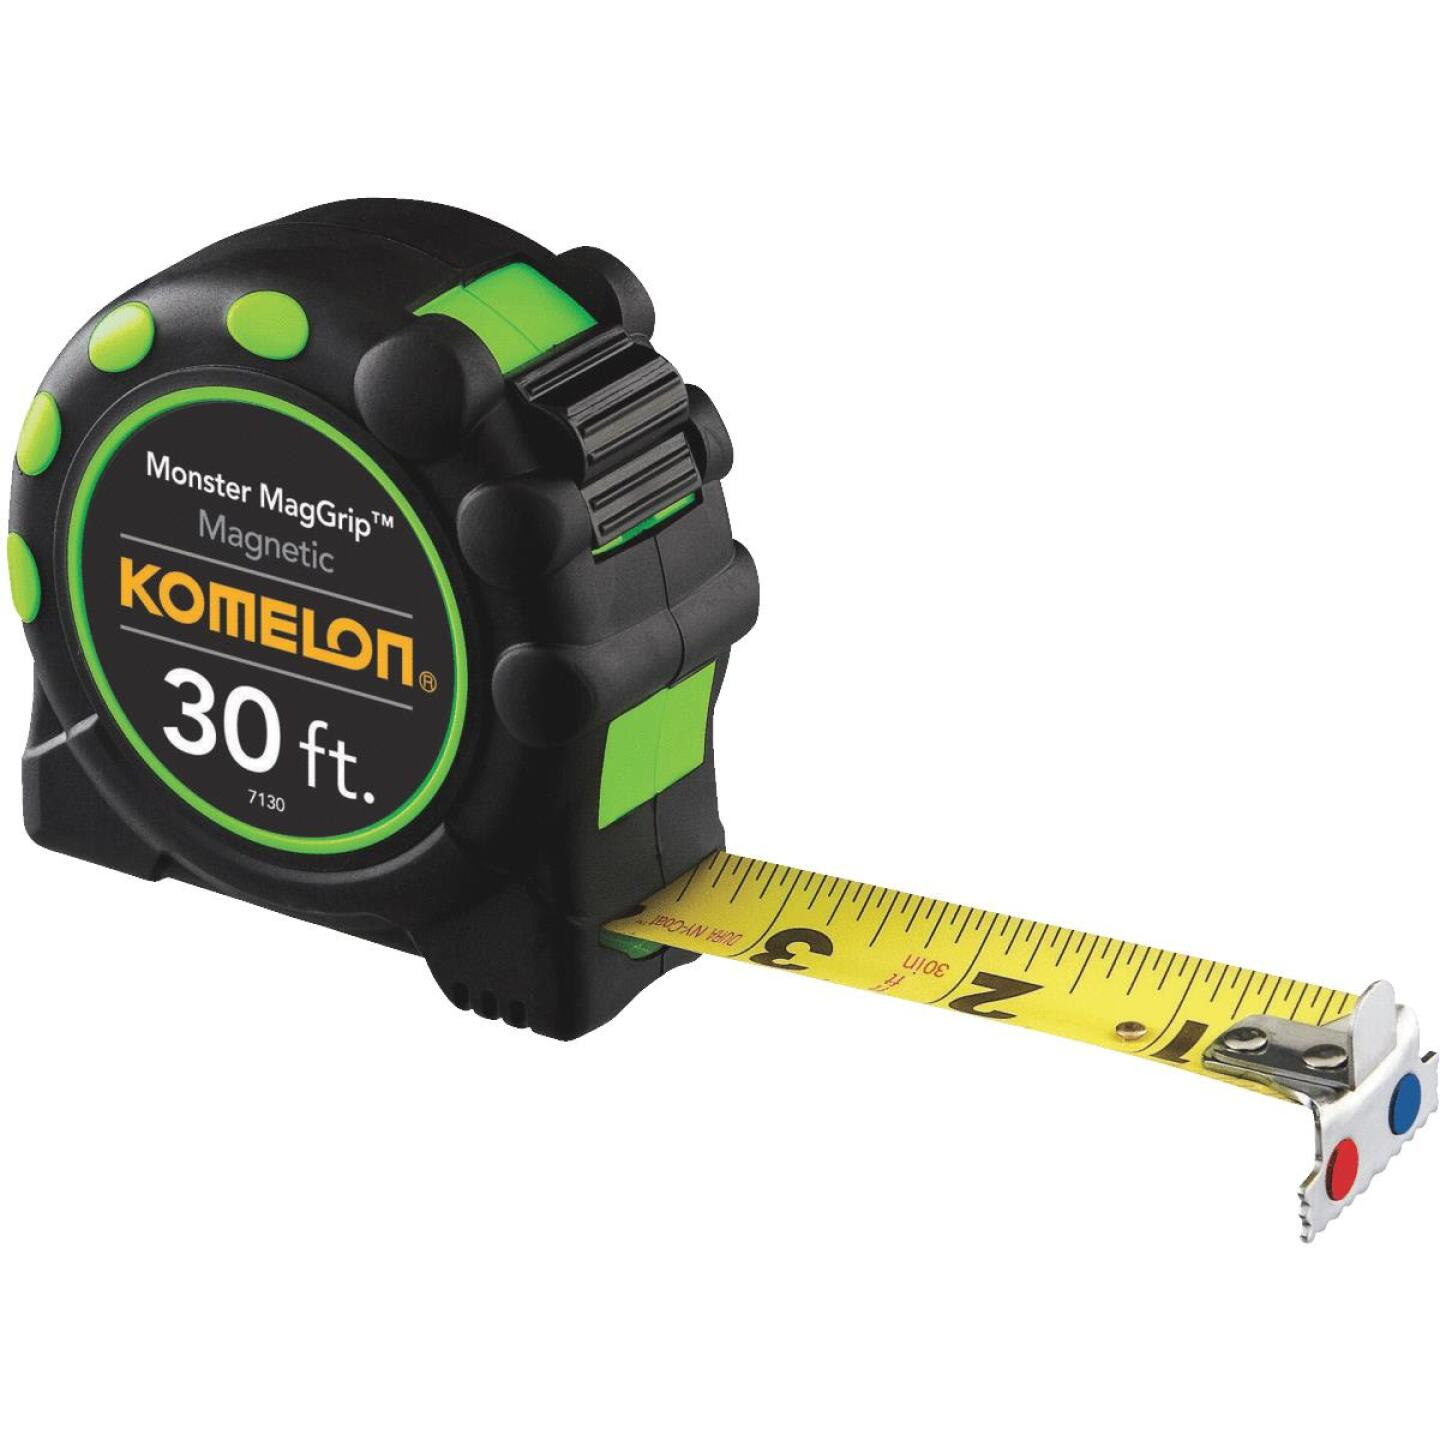 Komelon MagGrip 30 Ft. Tape Measure Image 1